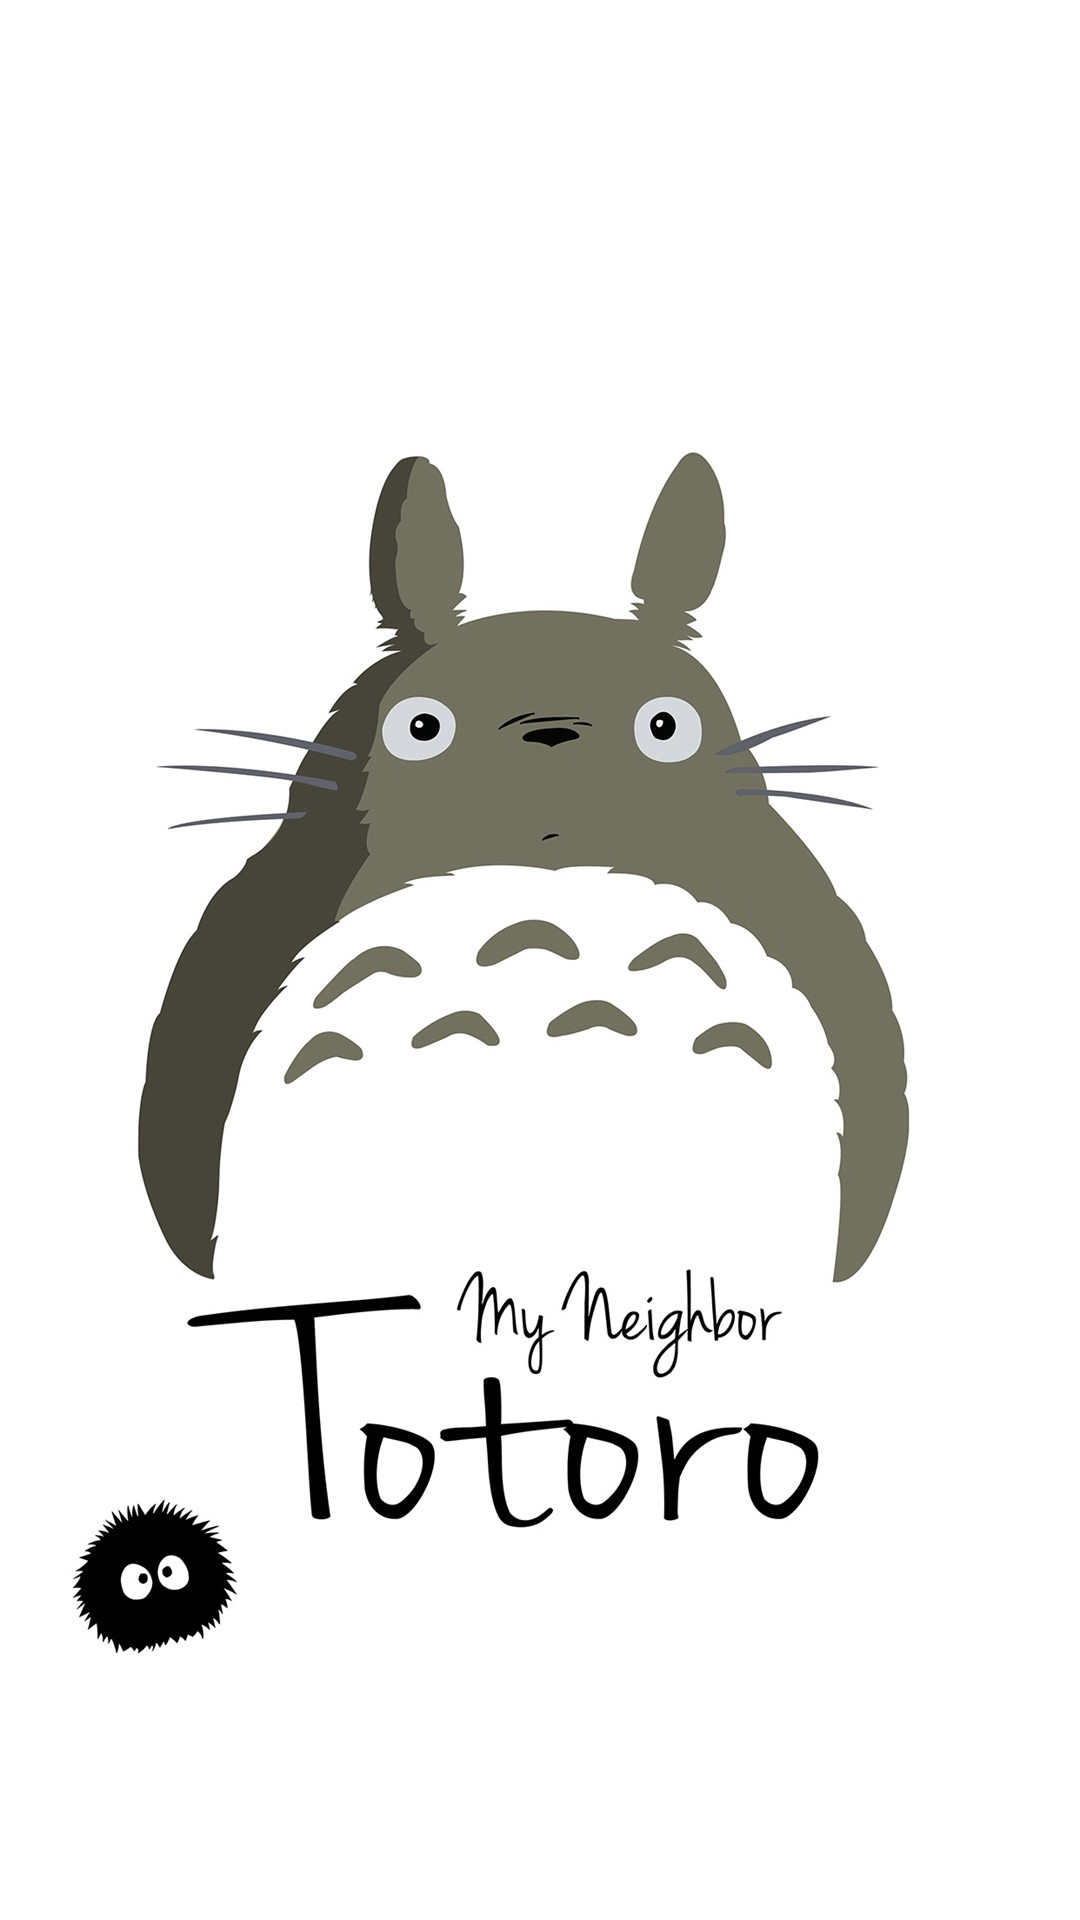 My Neighbor Totoro Full Movie